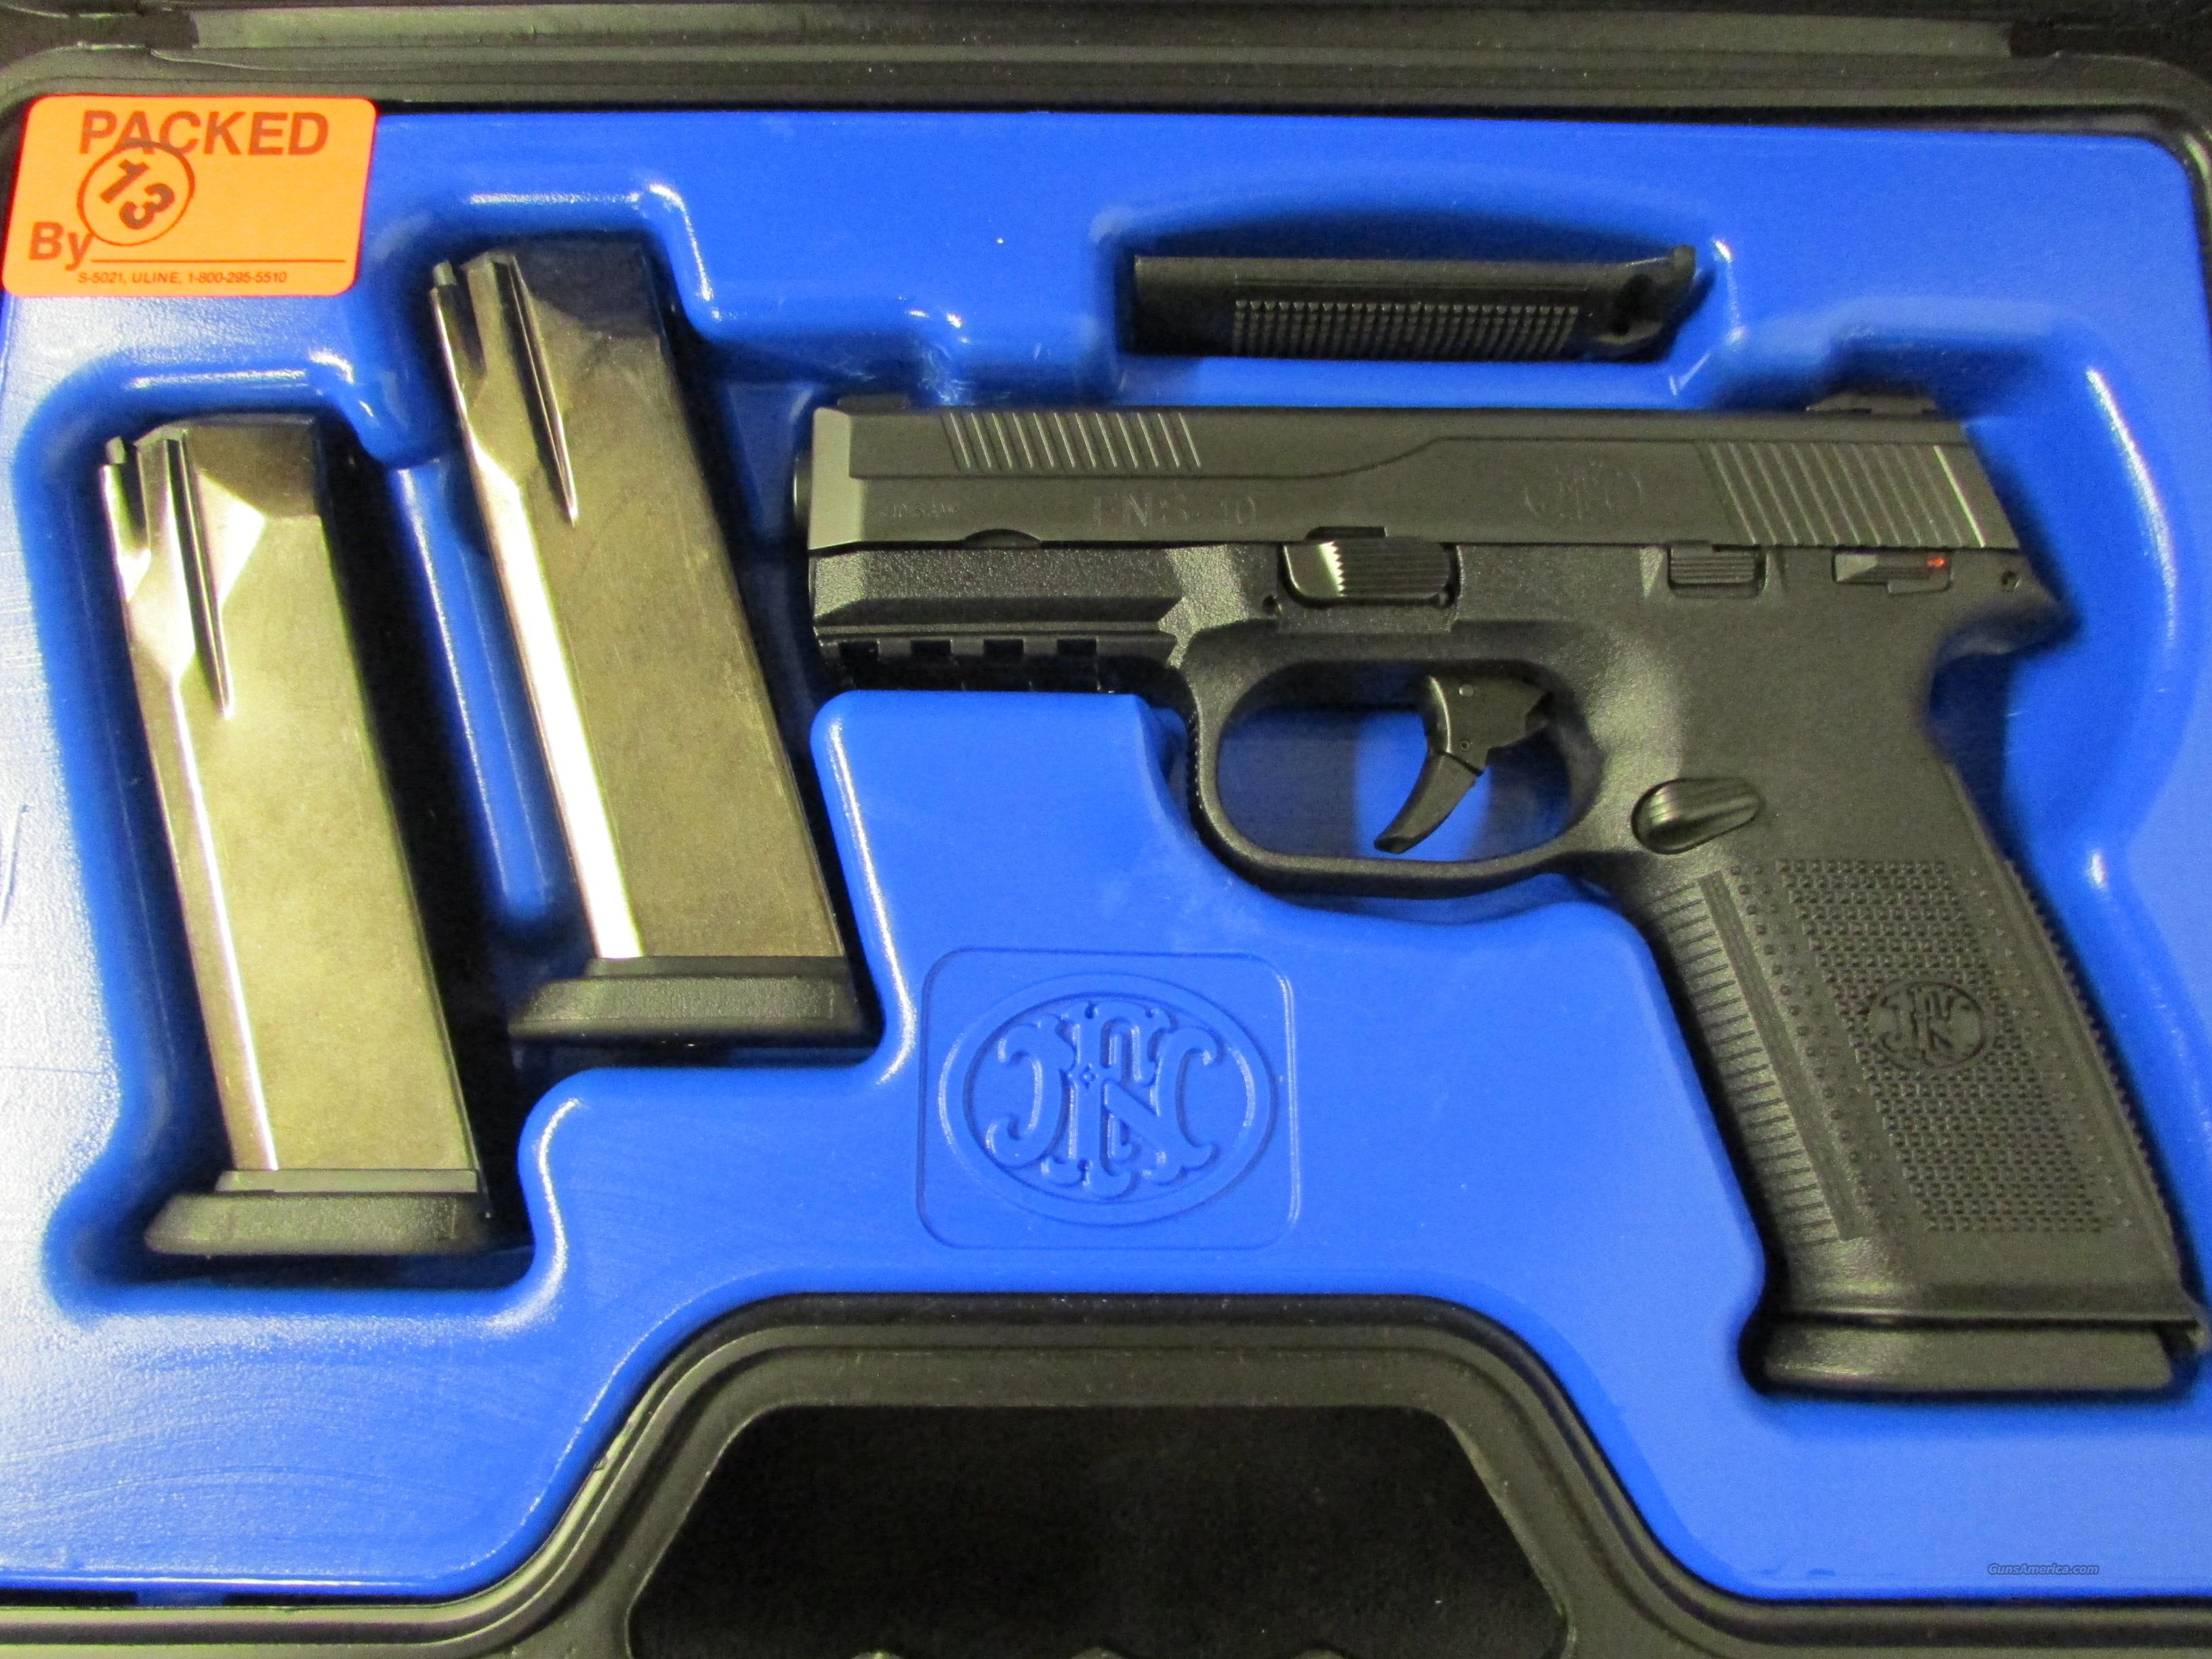 FNH-USA FN FNS-40 Black .40 S&W 14 Round  Guns > Pistols > FNH - Fabrique Nationale (FN) Pistols > FNP